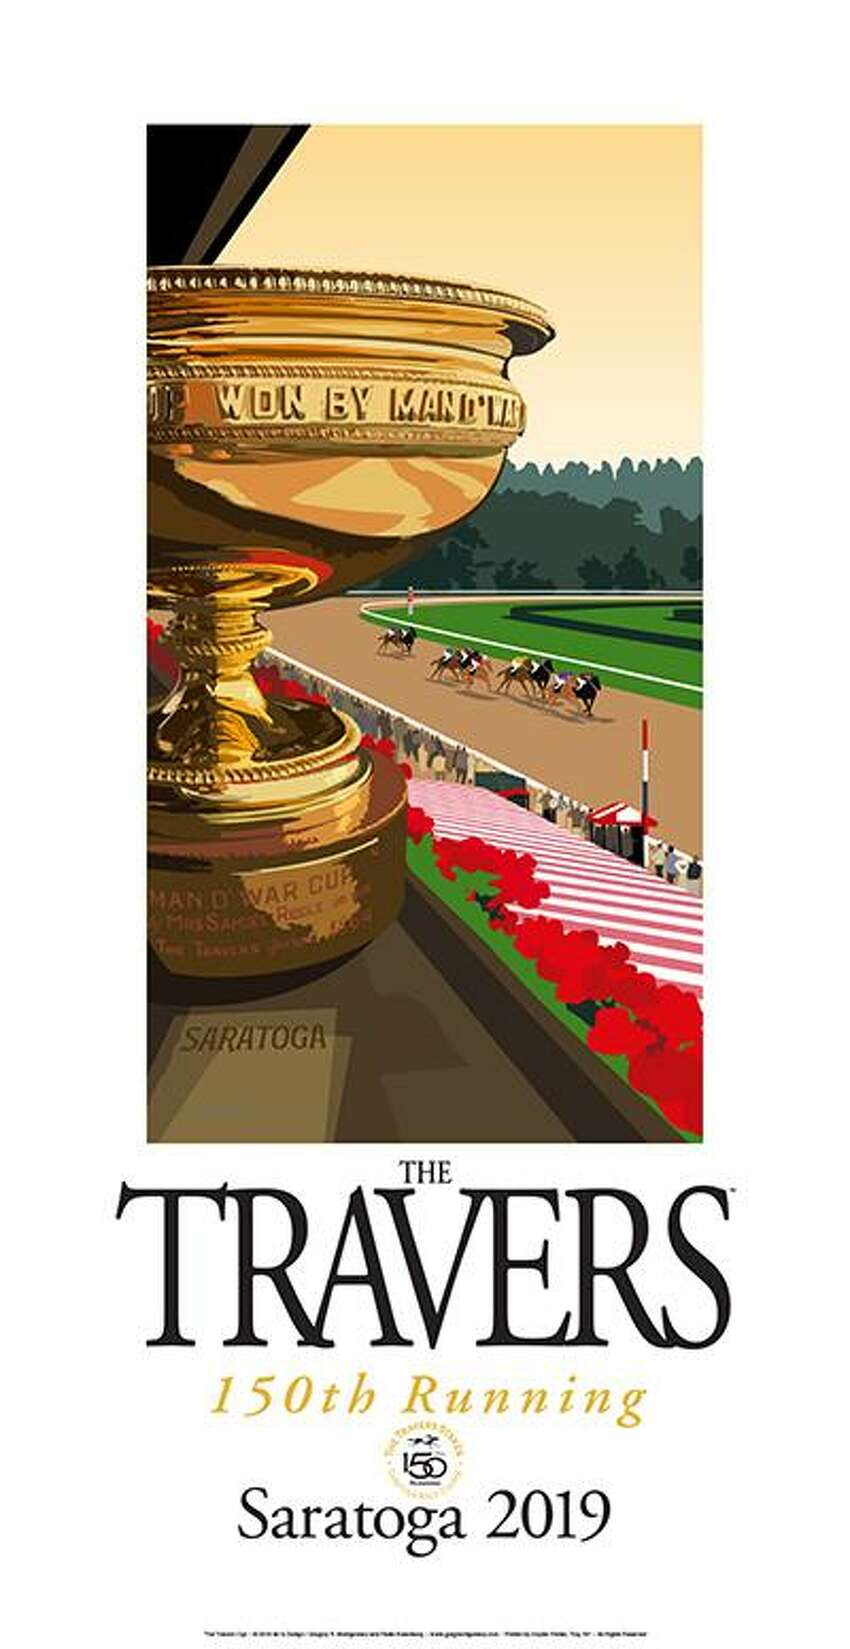 2019 The Travers Cup